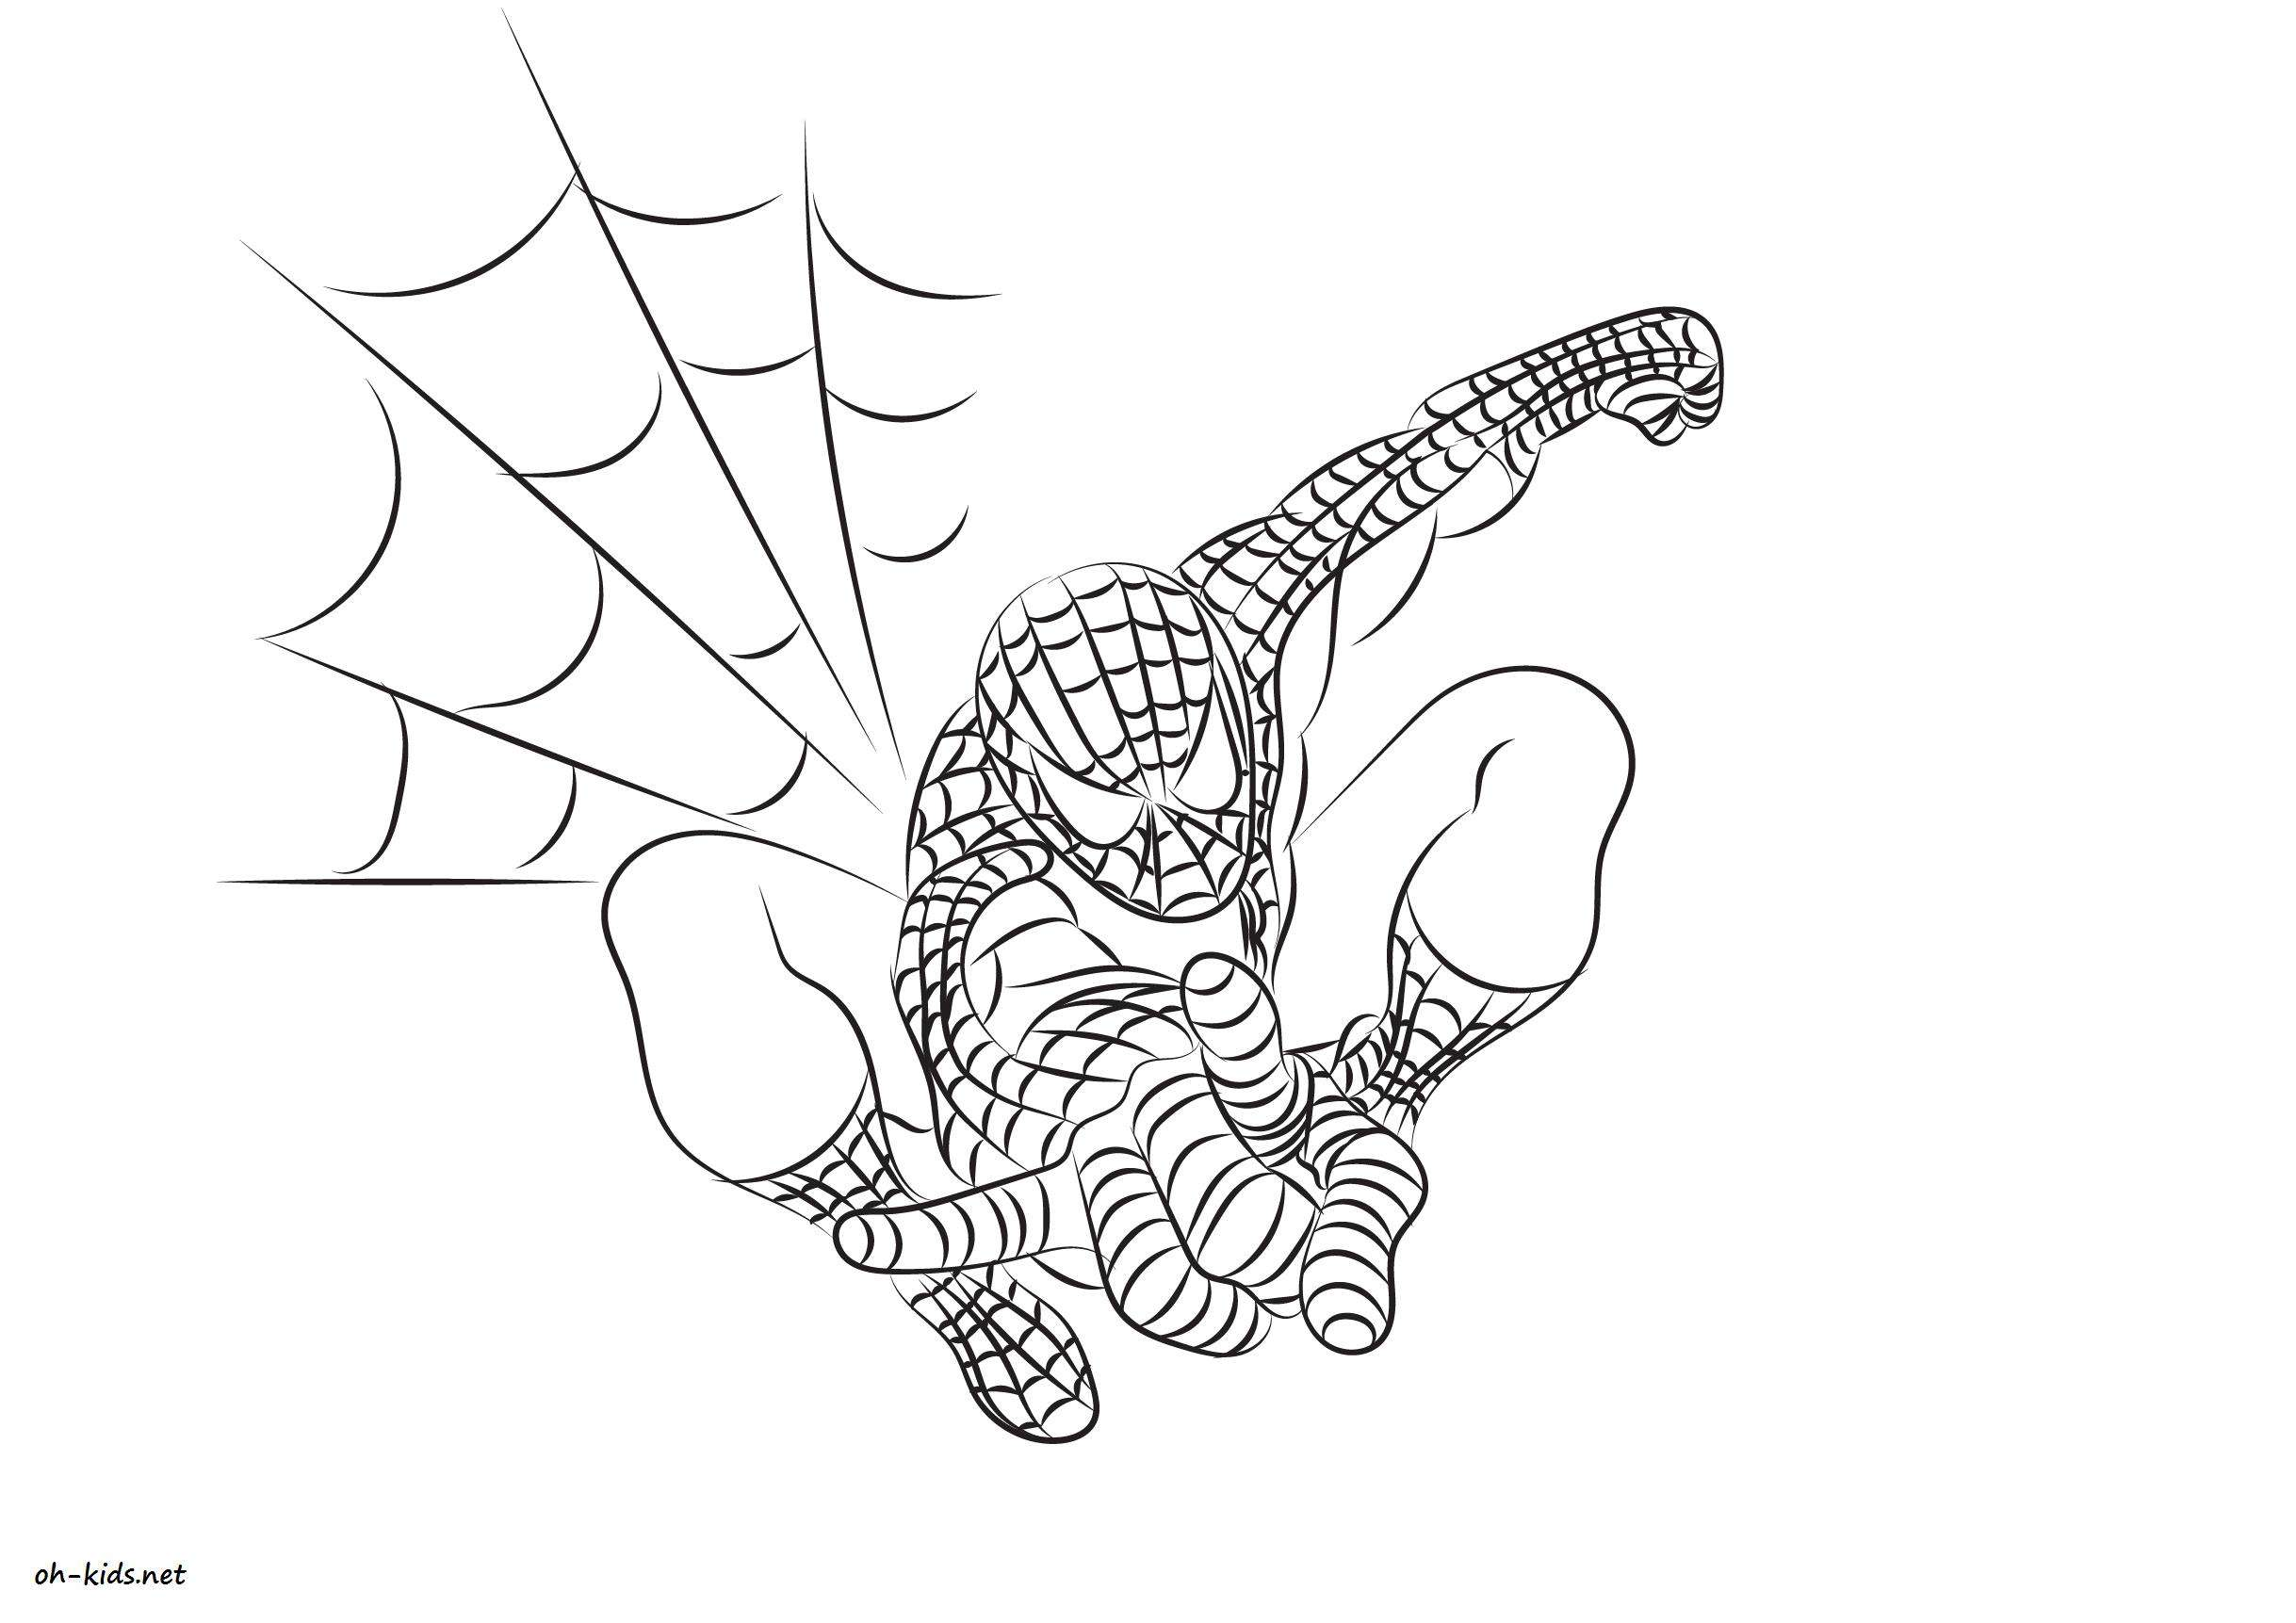 Dessin 829 coloriage spiderman imprimer oh - Coloriage spiderman 1 ...